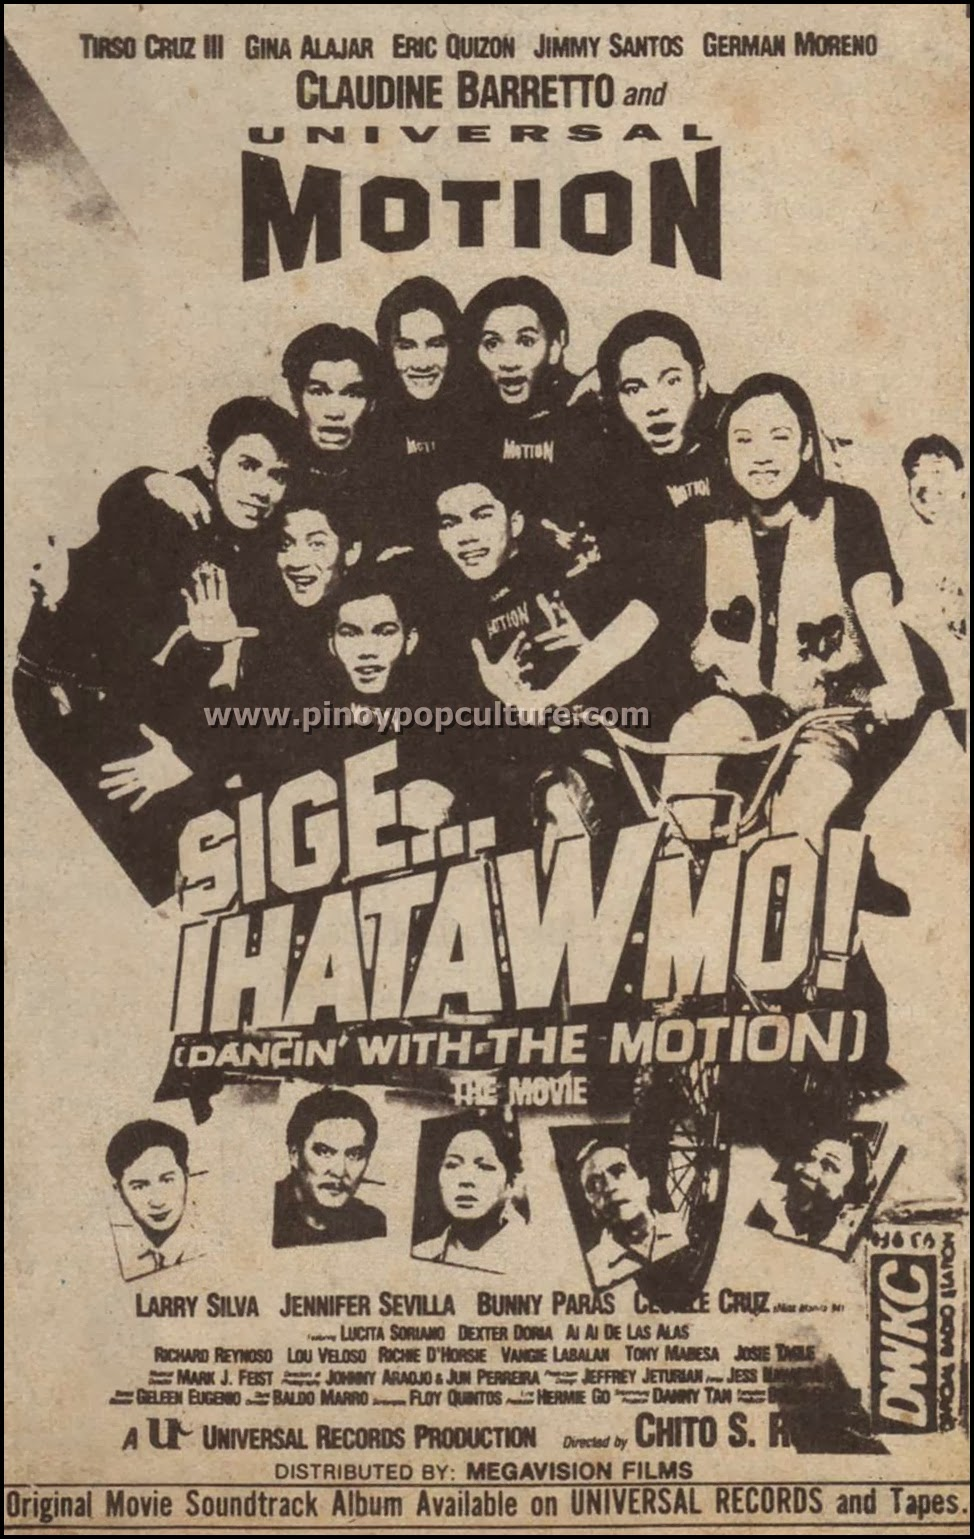 Sige Ihataw Mo Dancin with the Motion, movies, Universal Motion Dancers, UMD